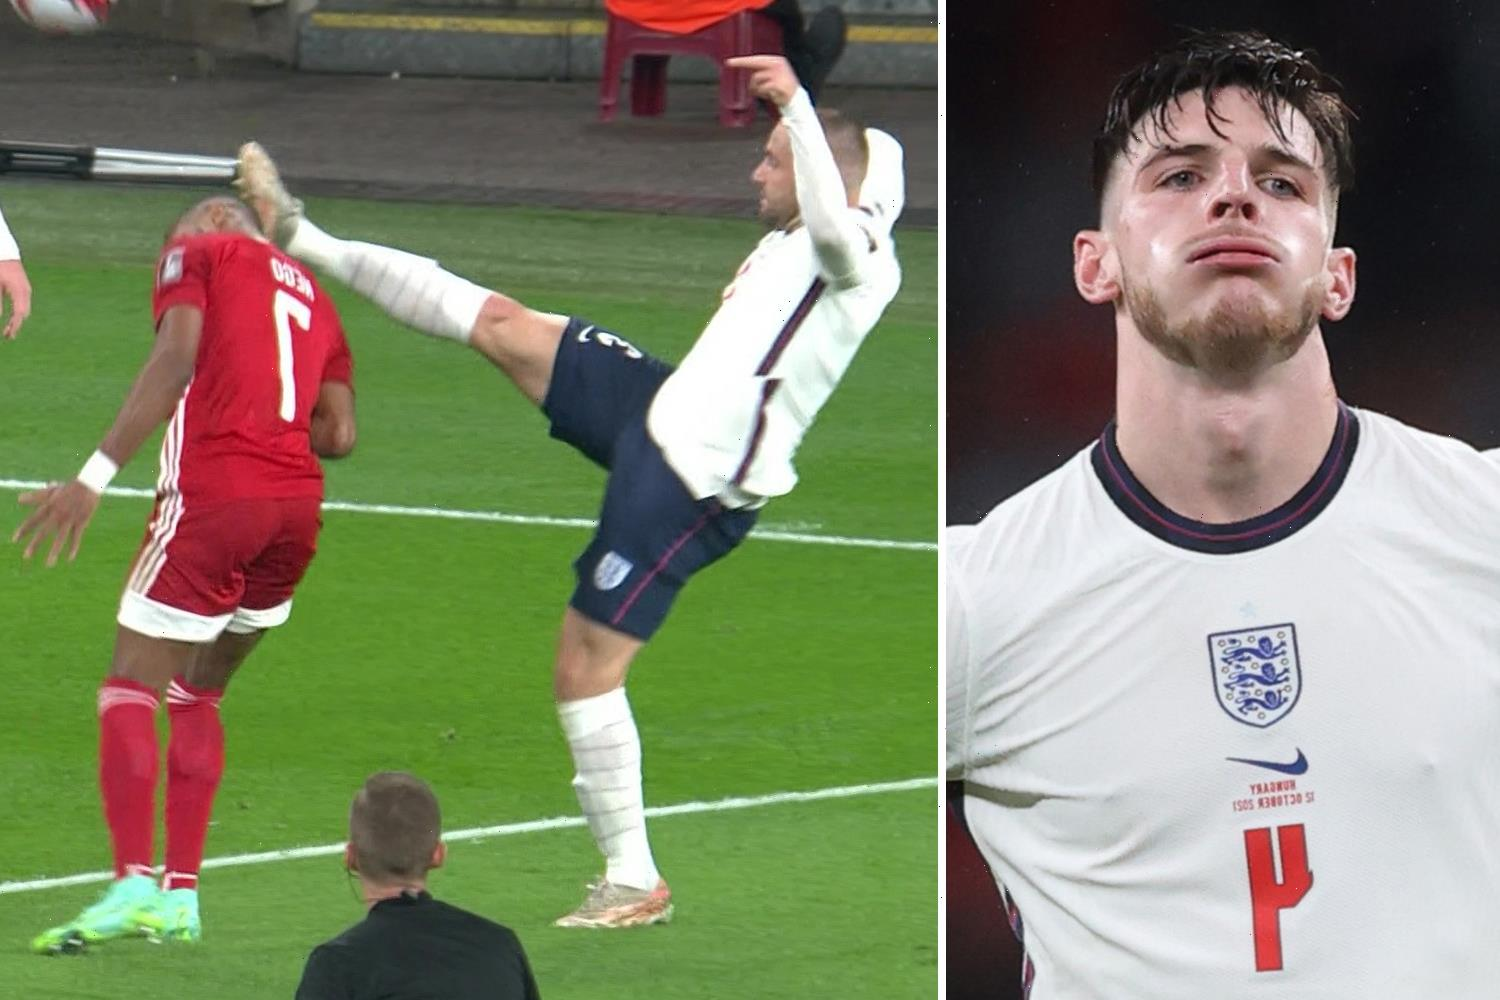 Declan Rice slams Hungary star as 'pathetic' after his dramatic reaction won penalty against England in drab 1-1 draw